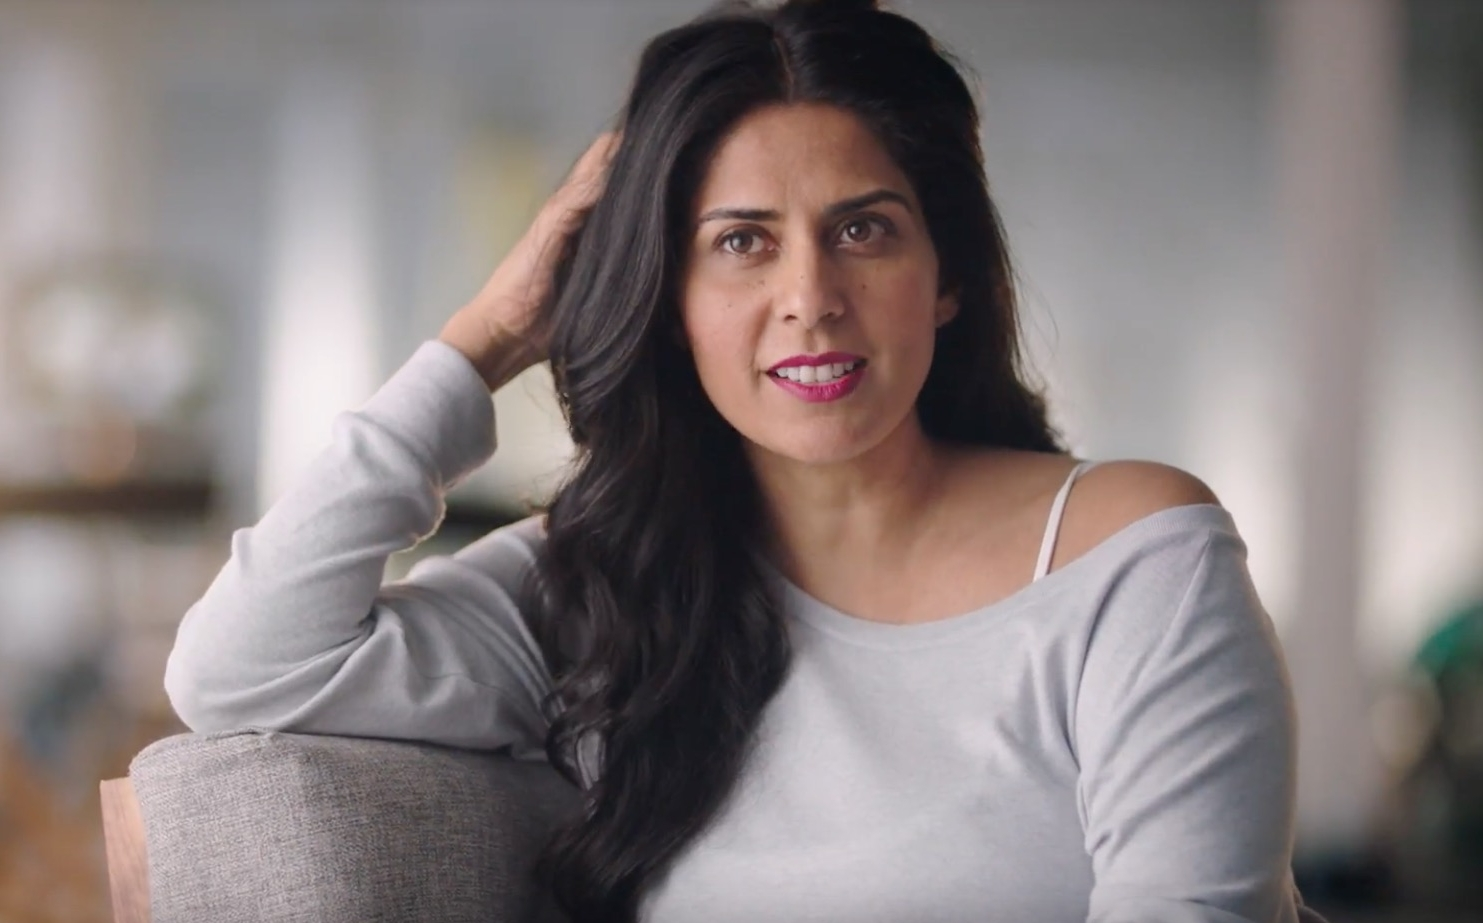 CVS: Long Live Skin Campaign - Watch the videos here.